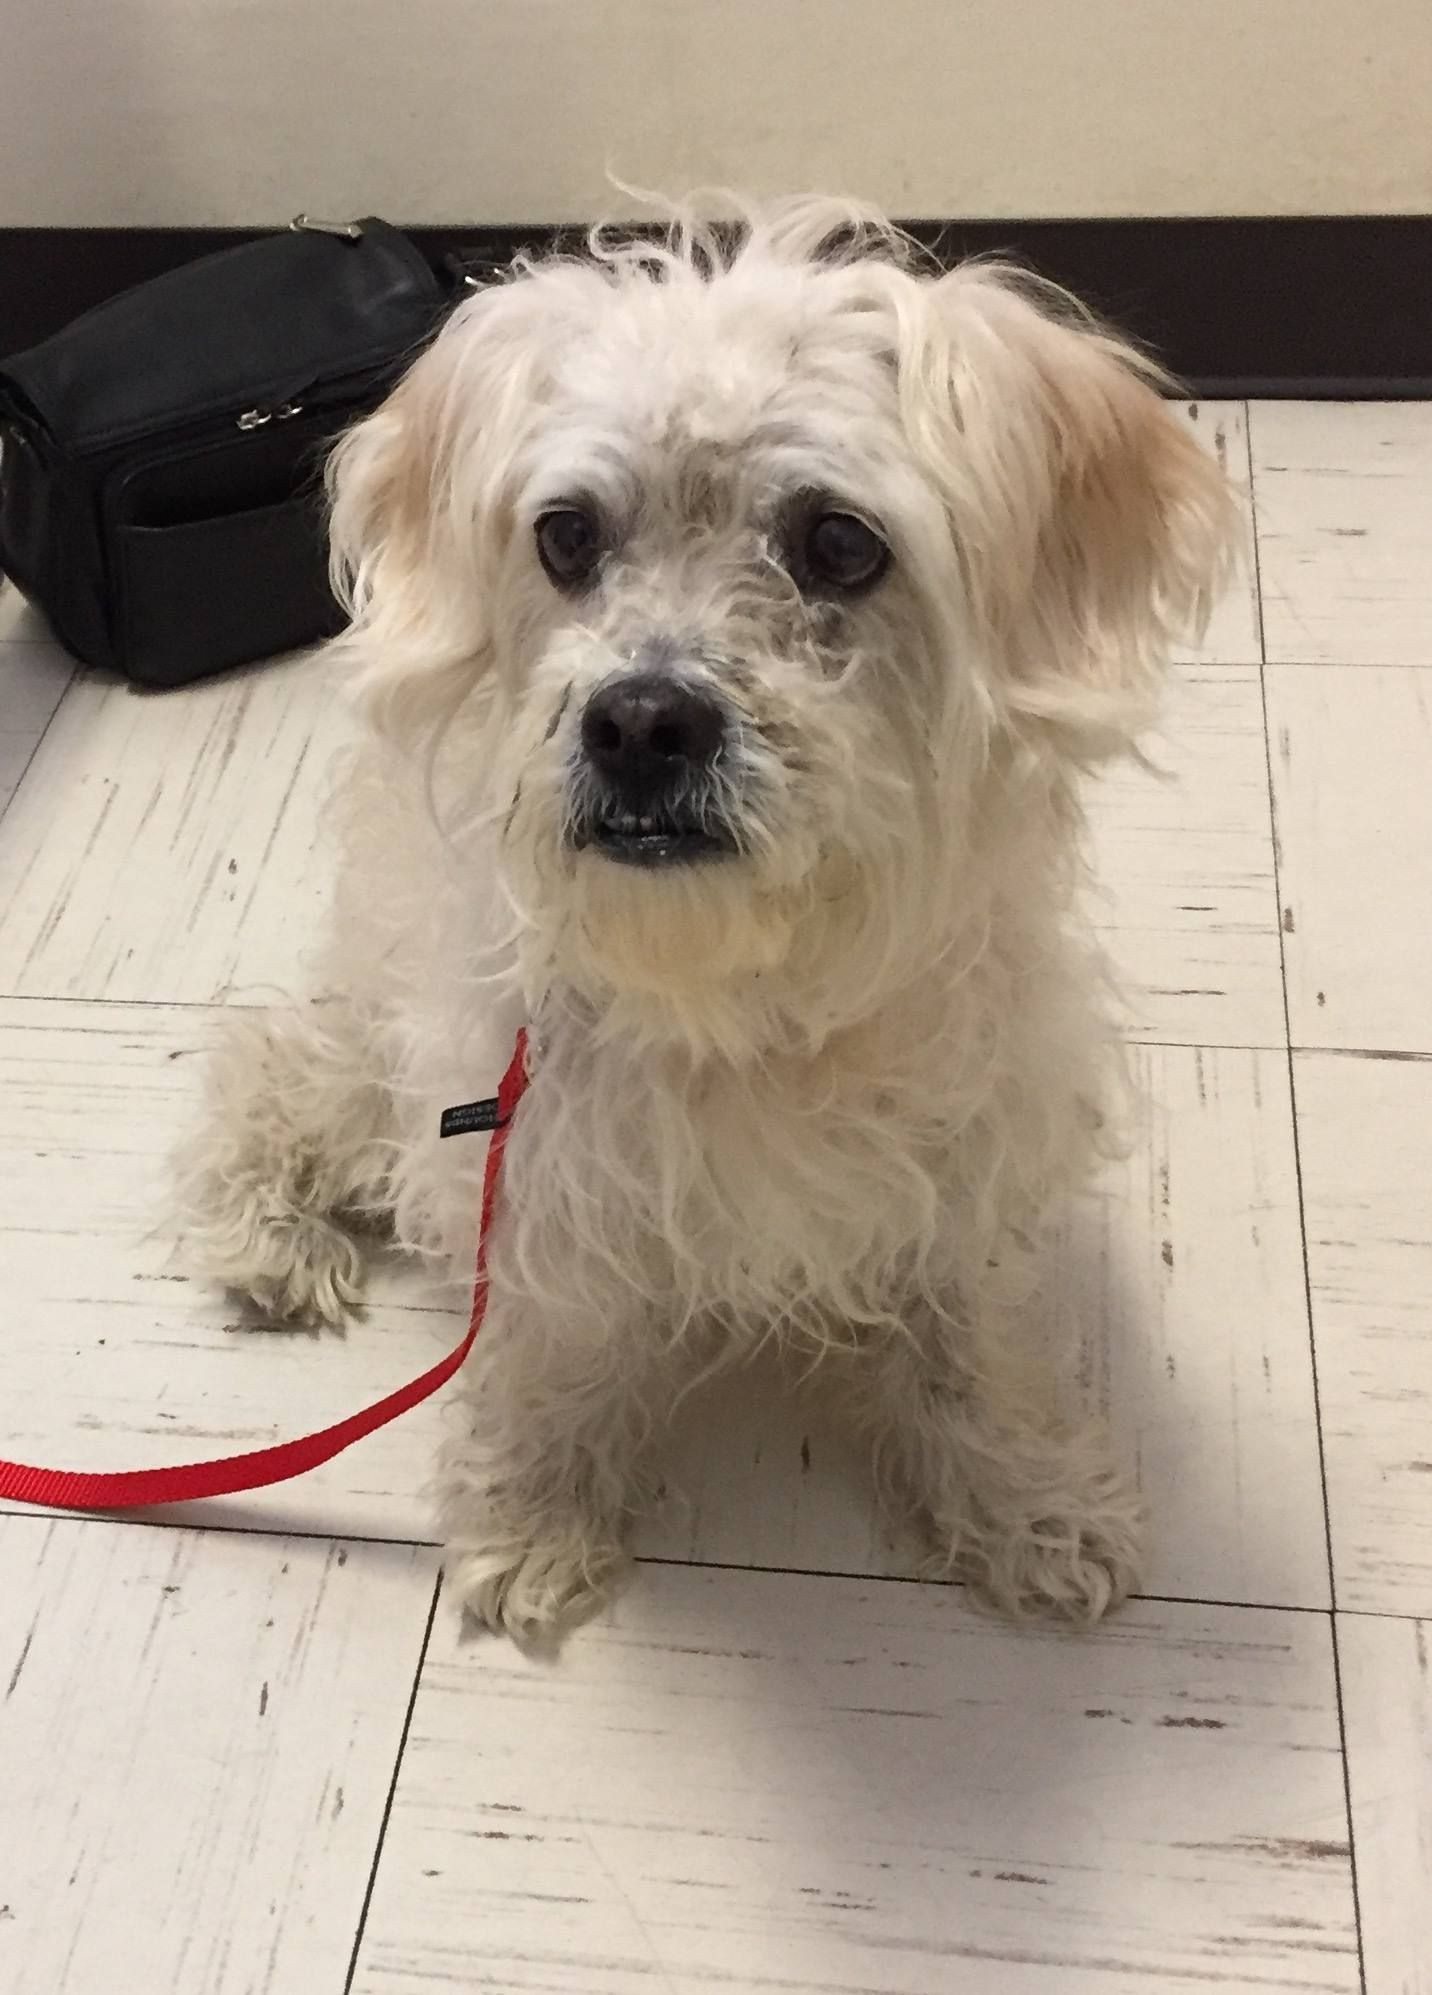 Poodle Rescue Connecticut Inc Added 3 New Photos March 29 At 3 56pm My Name Is Paisley I M An Unneutered Male With Horrible Poodle Rescue Poodle Animals